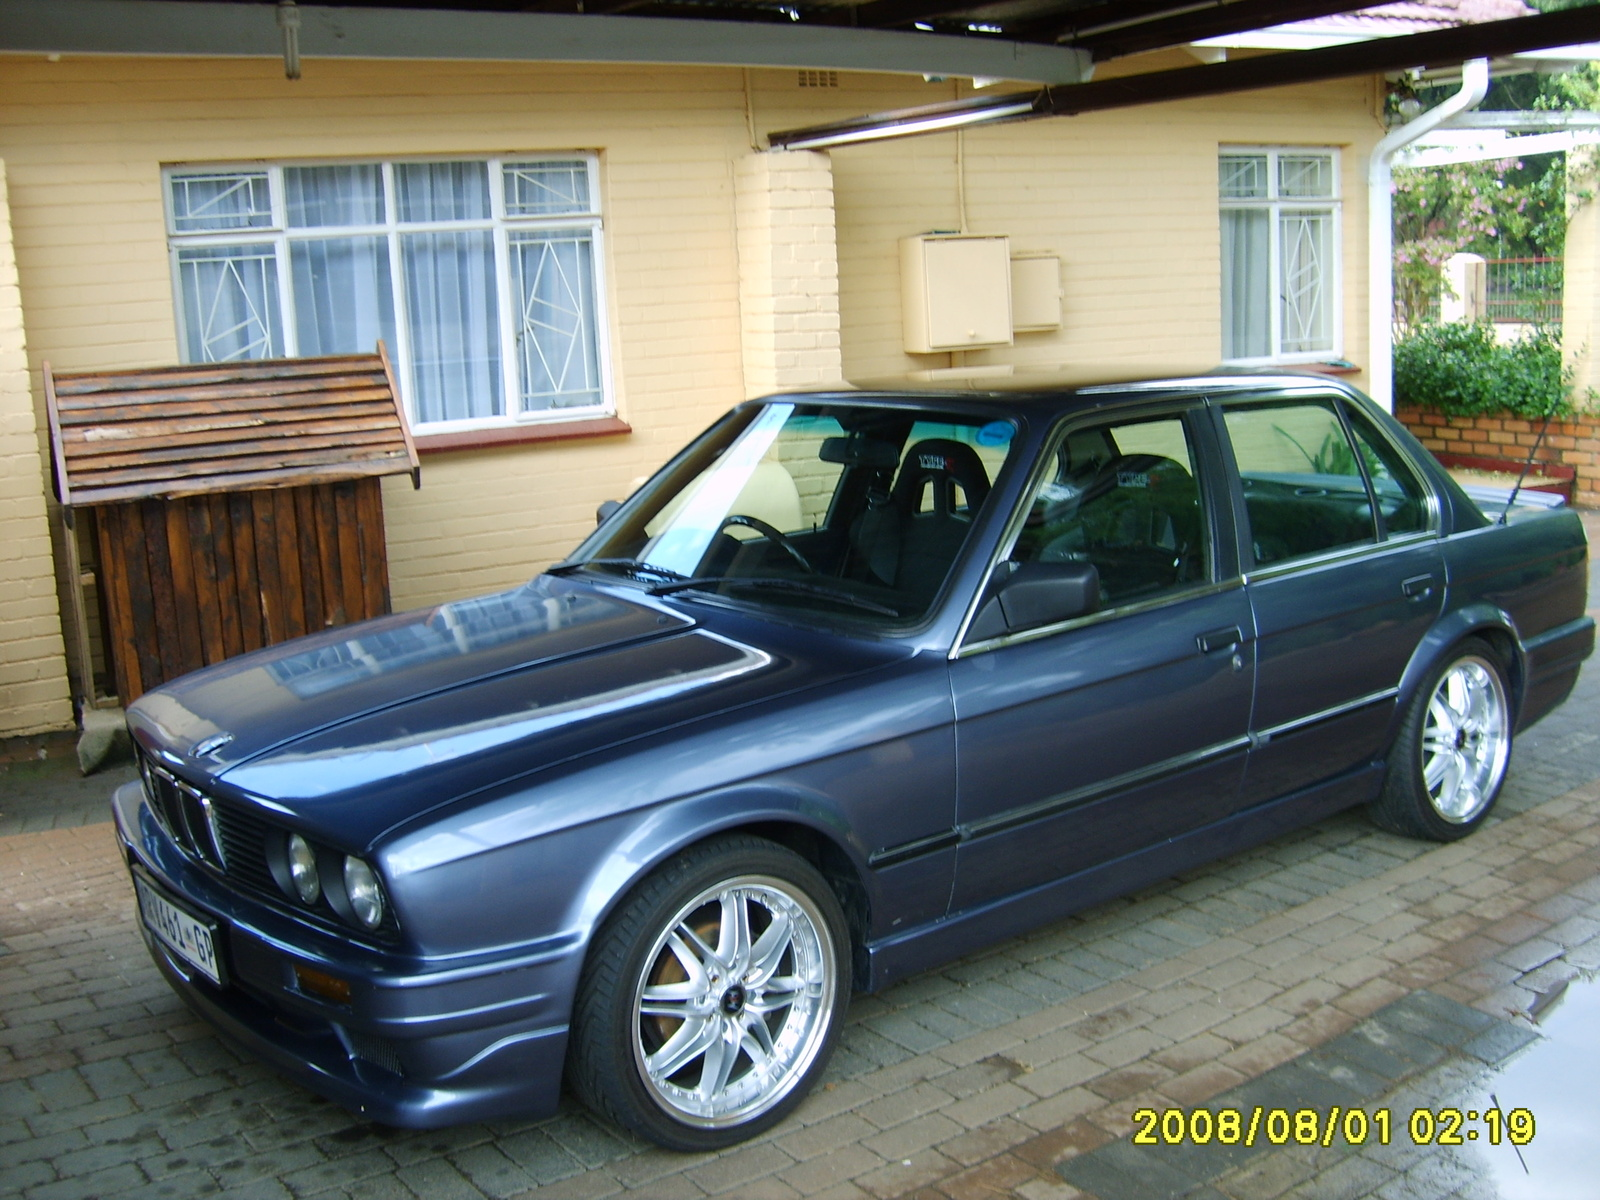 BMW 3 series 324d 1988 photo - 8